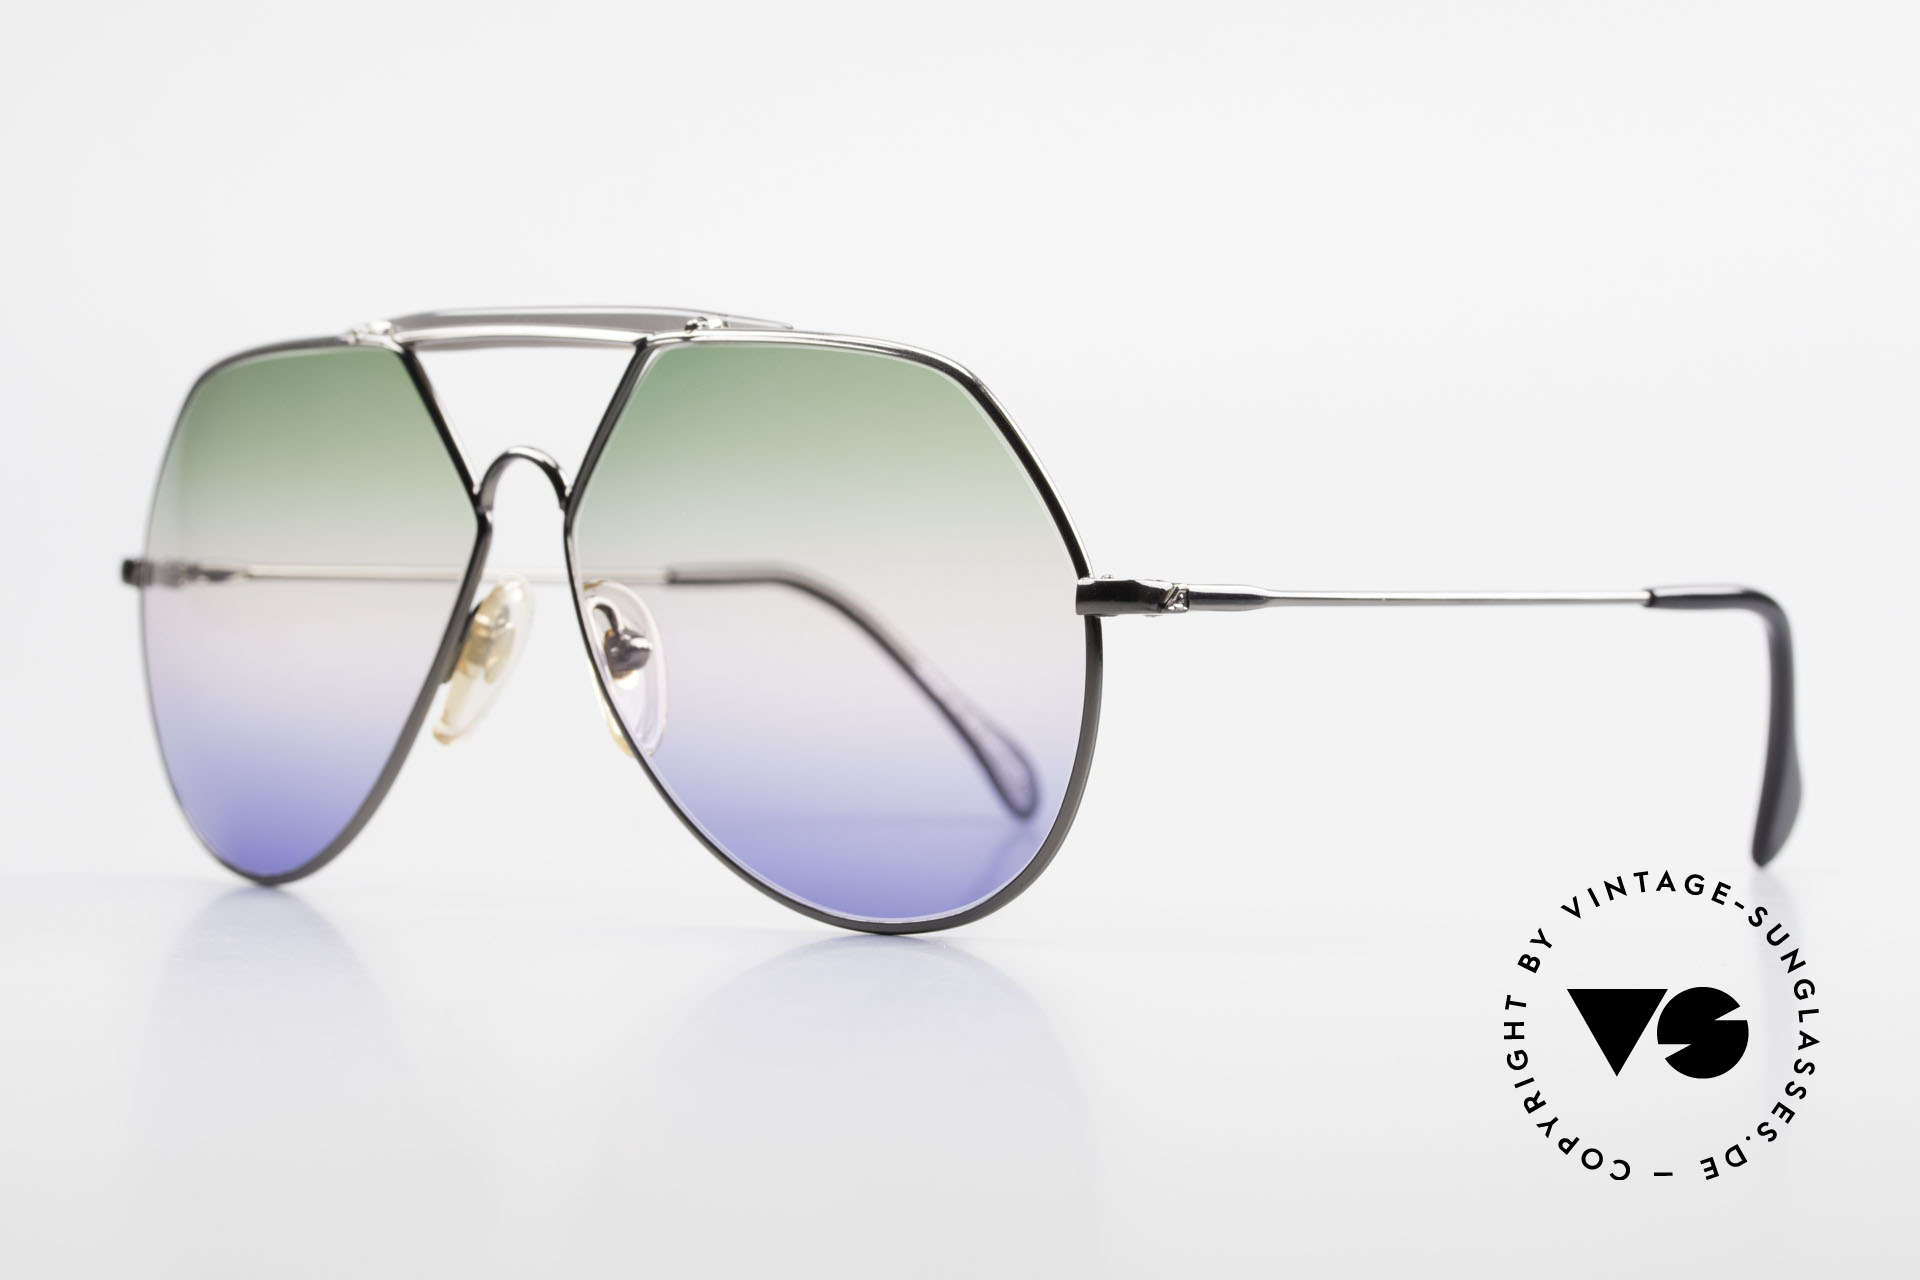 Alpina TR5 West Germany Aviator Frame, triple-gradient sun lenses (100% UV), eye-catcher, Made for Men